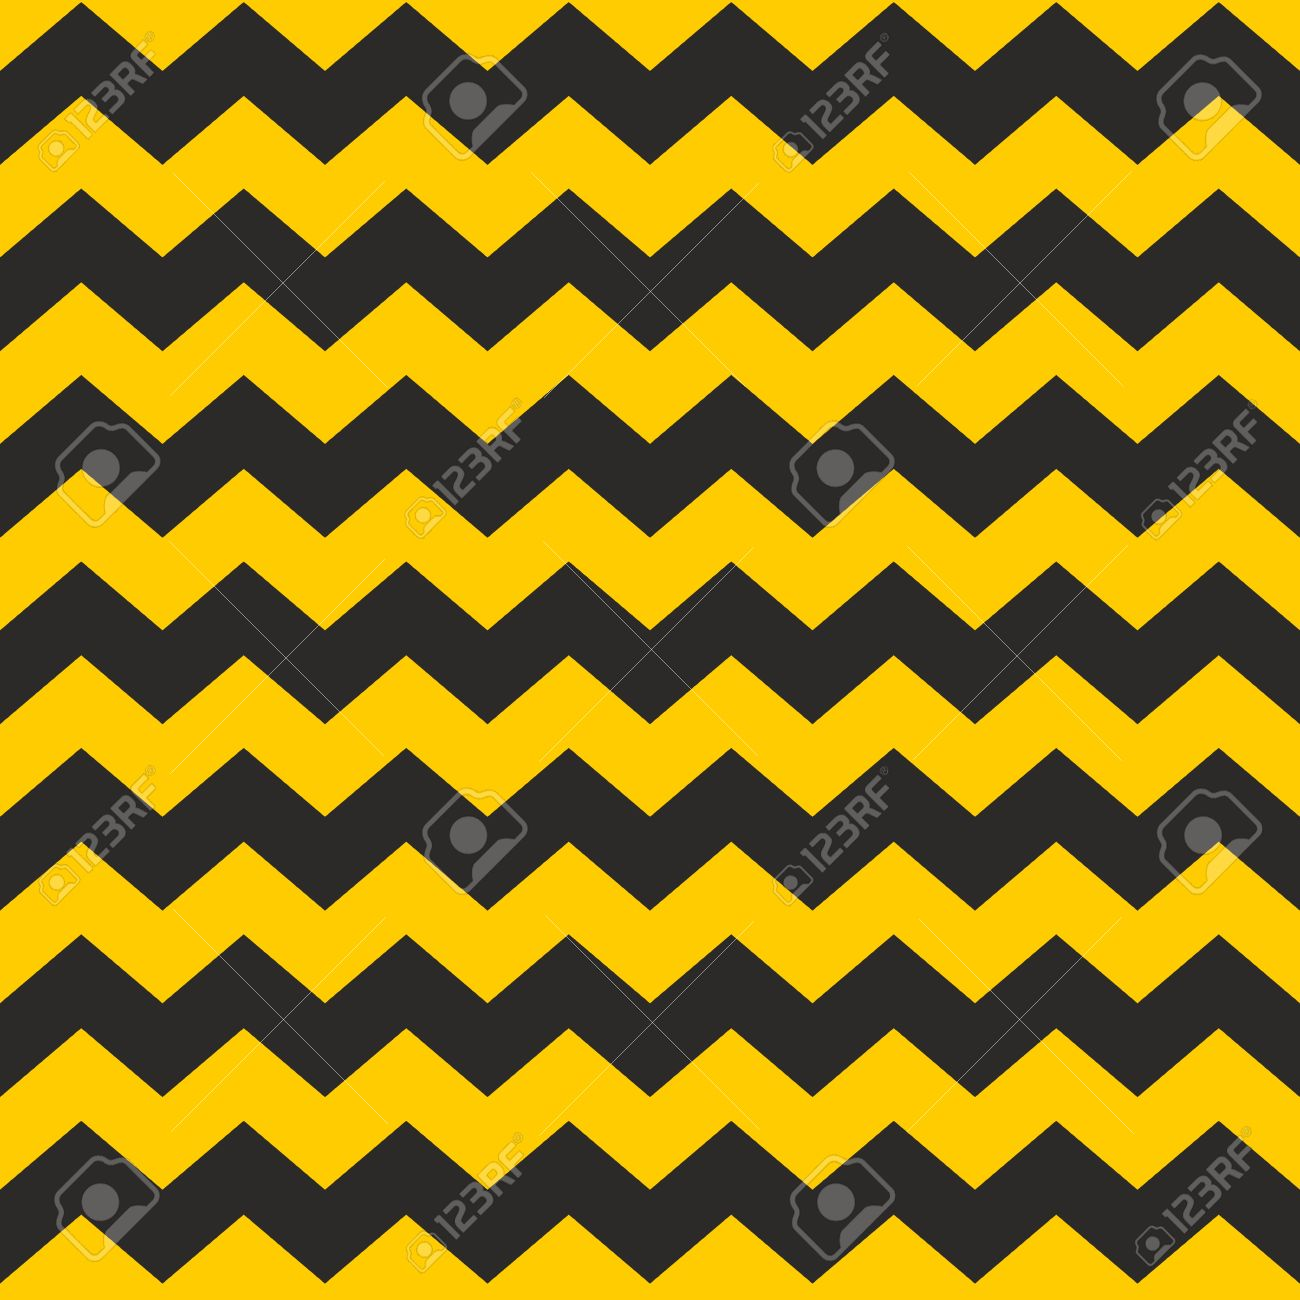 Zig Zag Chevron Black And Yellow Tile Vector Pattern Or Wallpaper 1300x1300